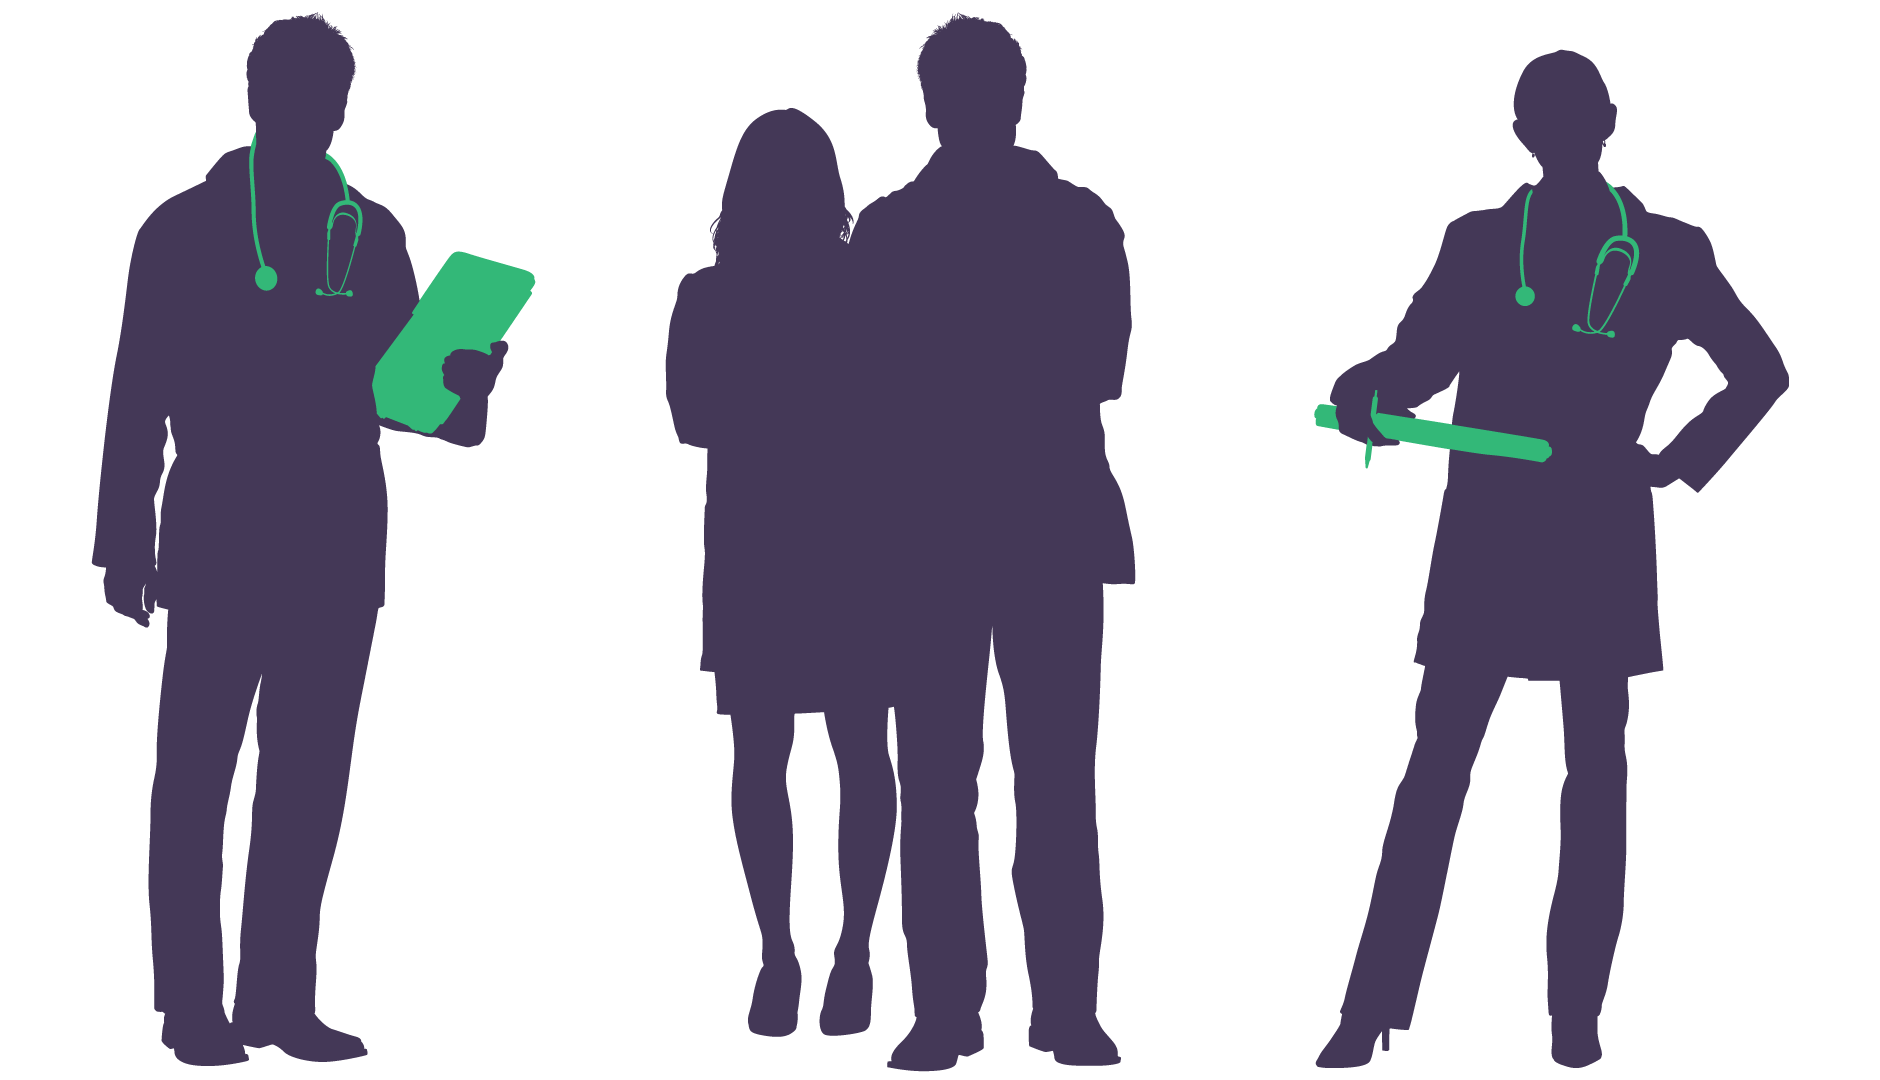 Professional clipart medical professional. Physician silhouette at getdrawings